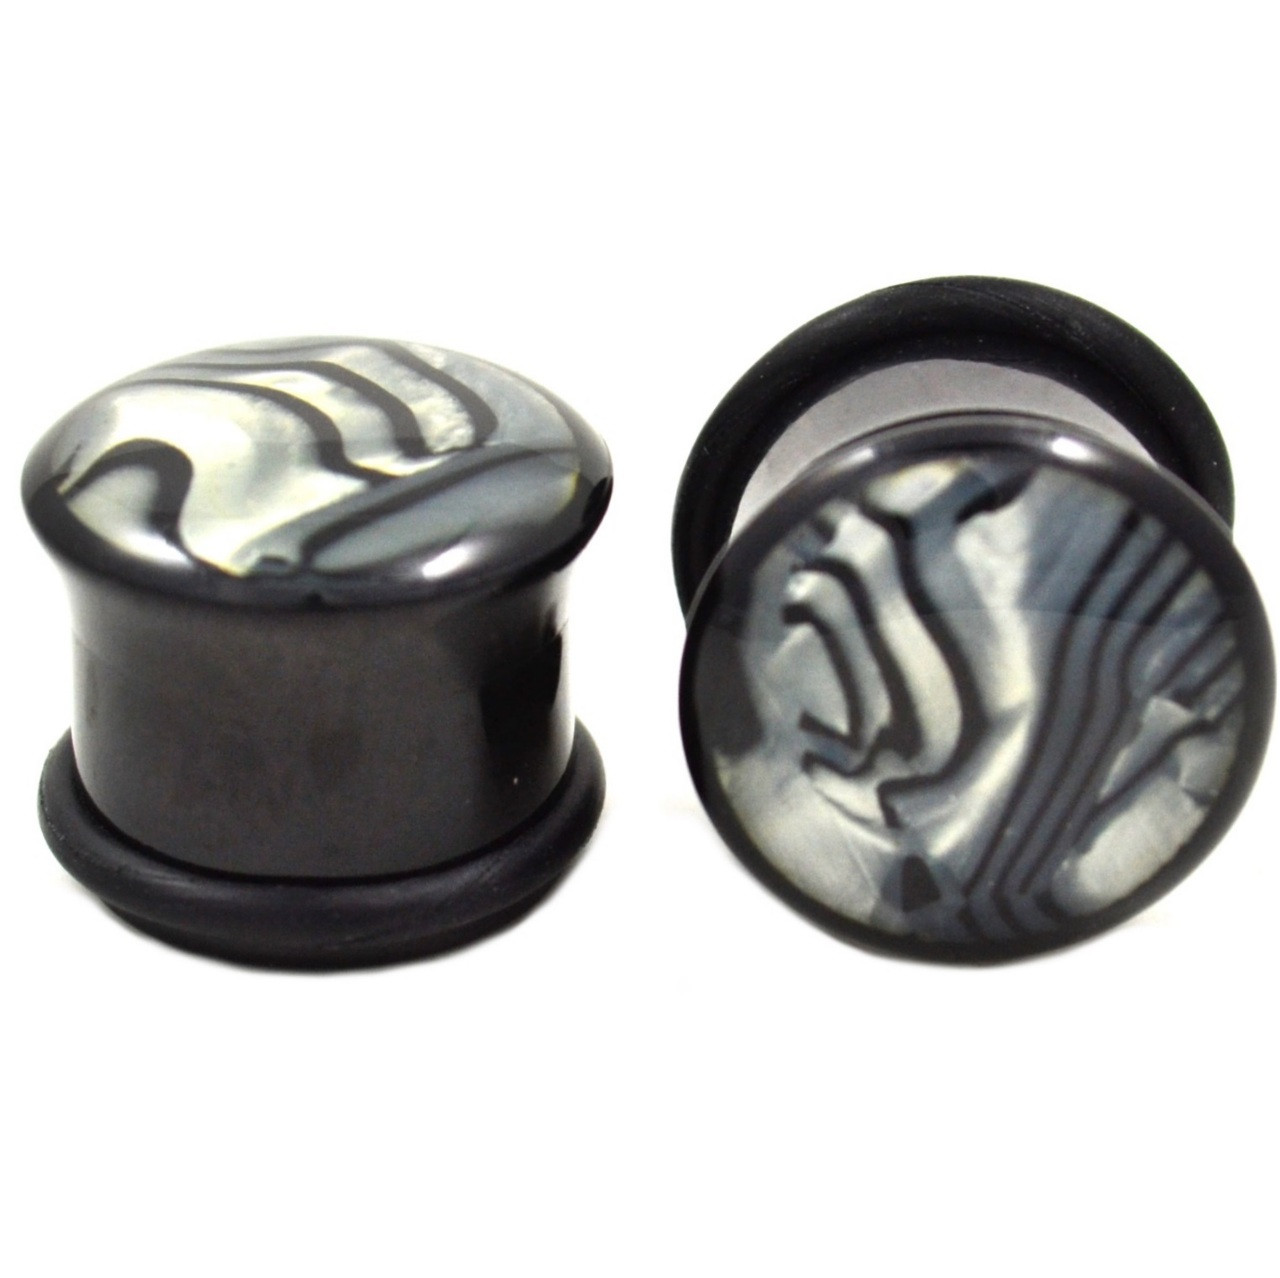 Zebra Shell Acrylic Single Flared Ear Plugs 6g 1